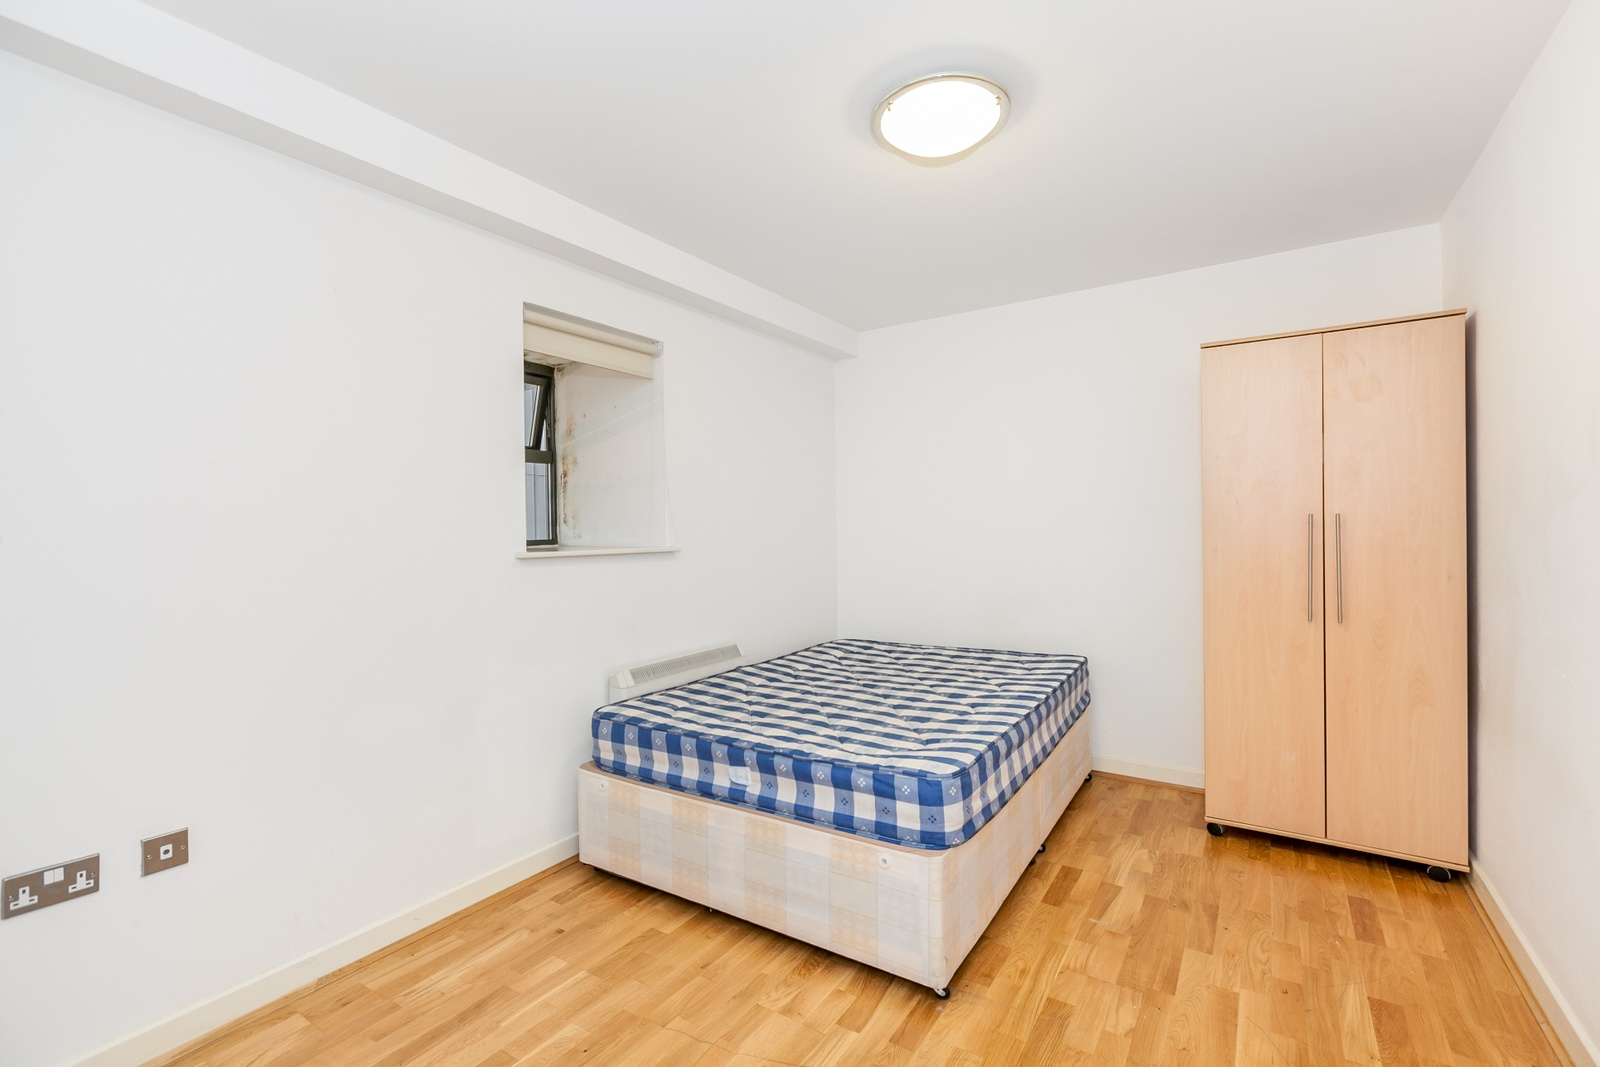 2 bedroom apartment to rent, Fieldgate Street, London, E1 1GU ...